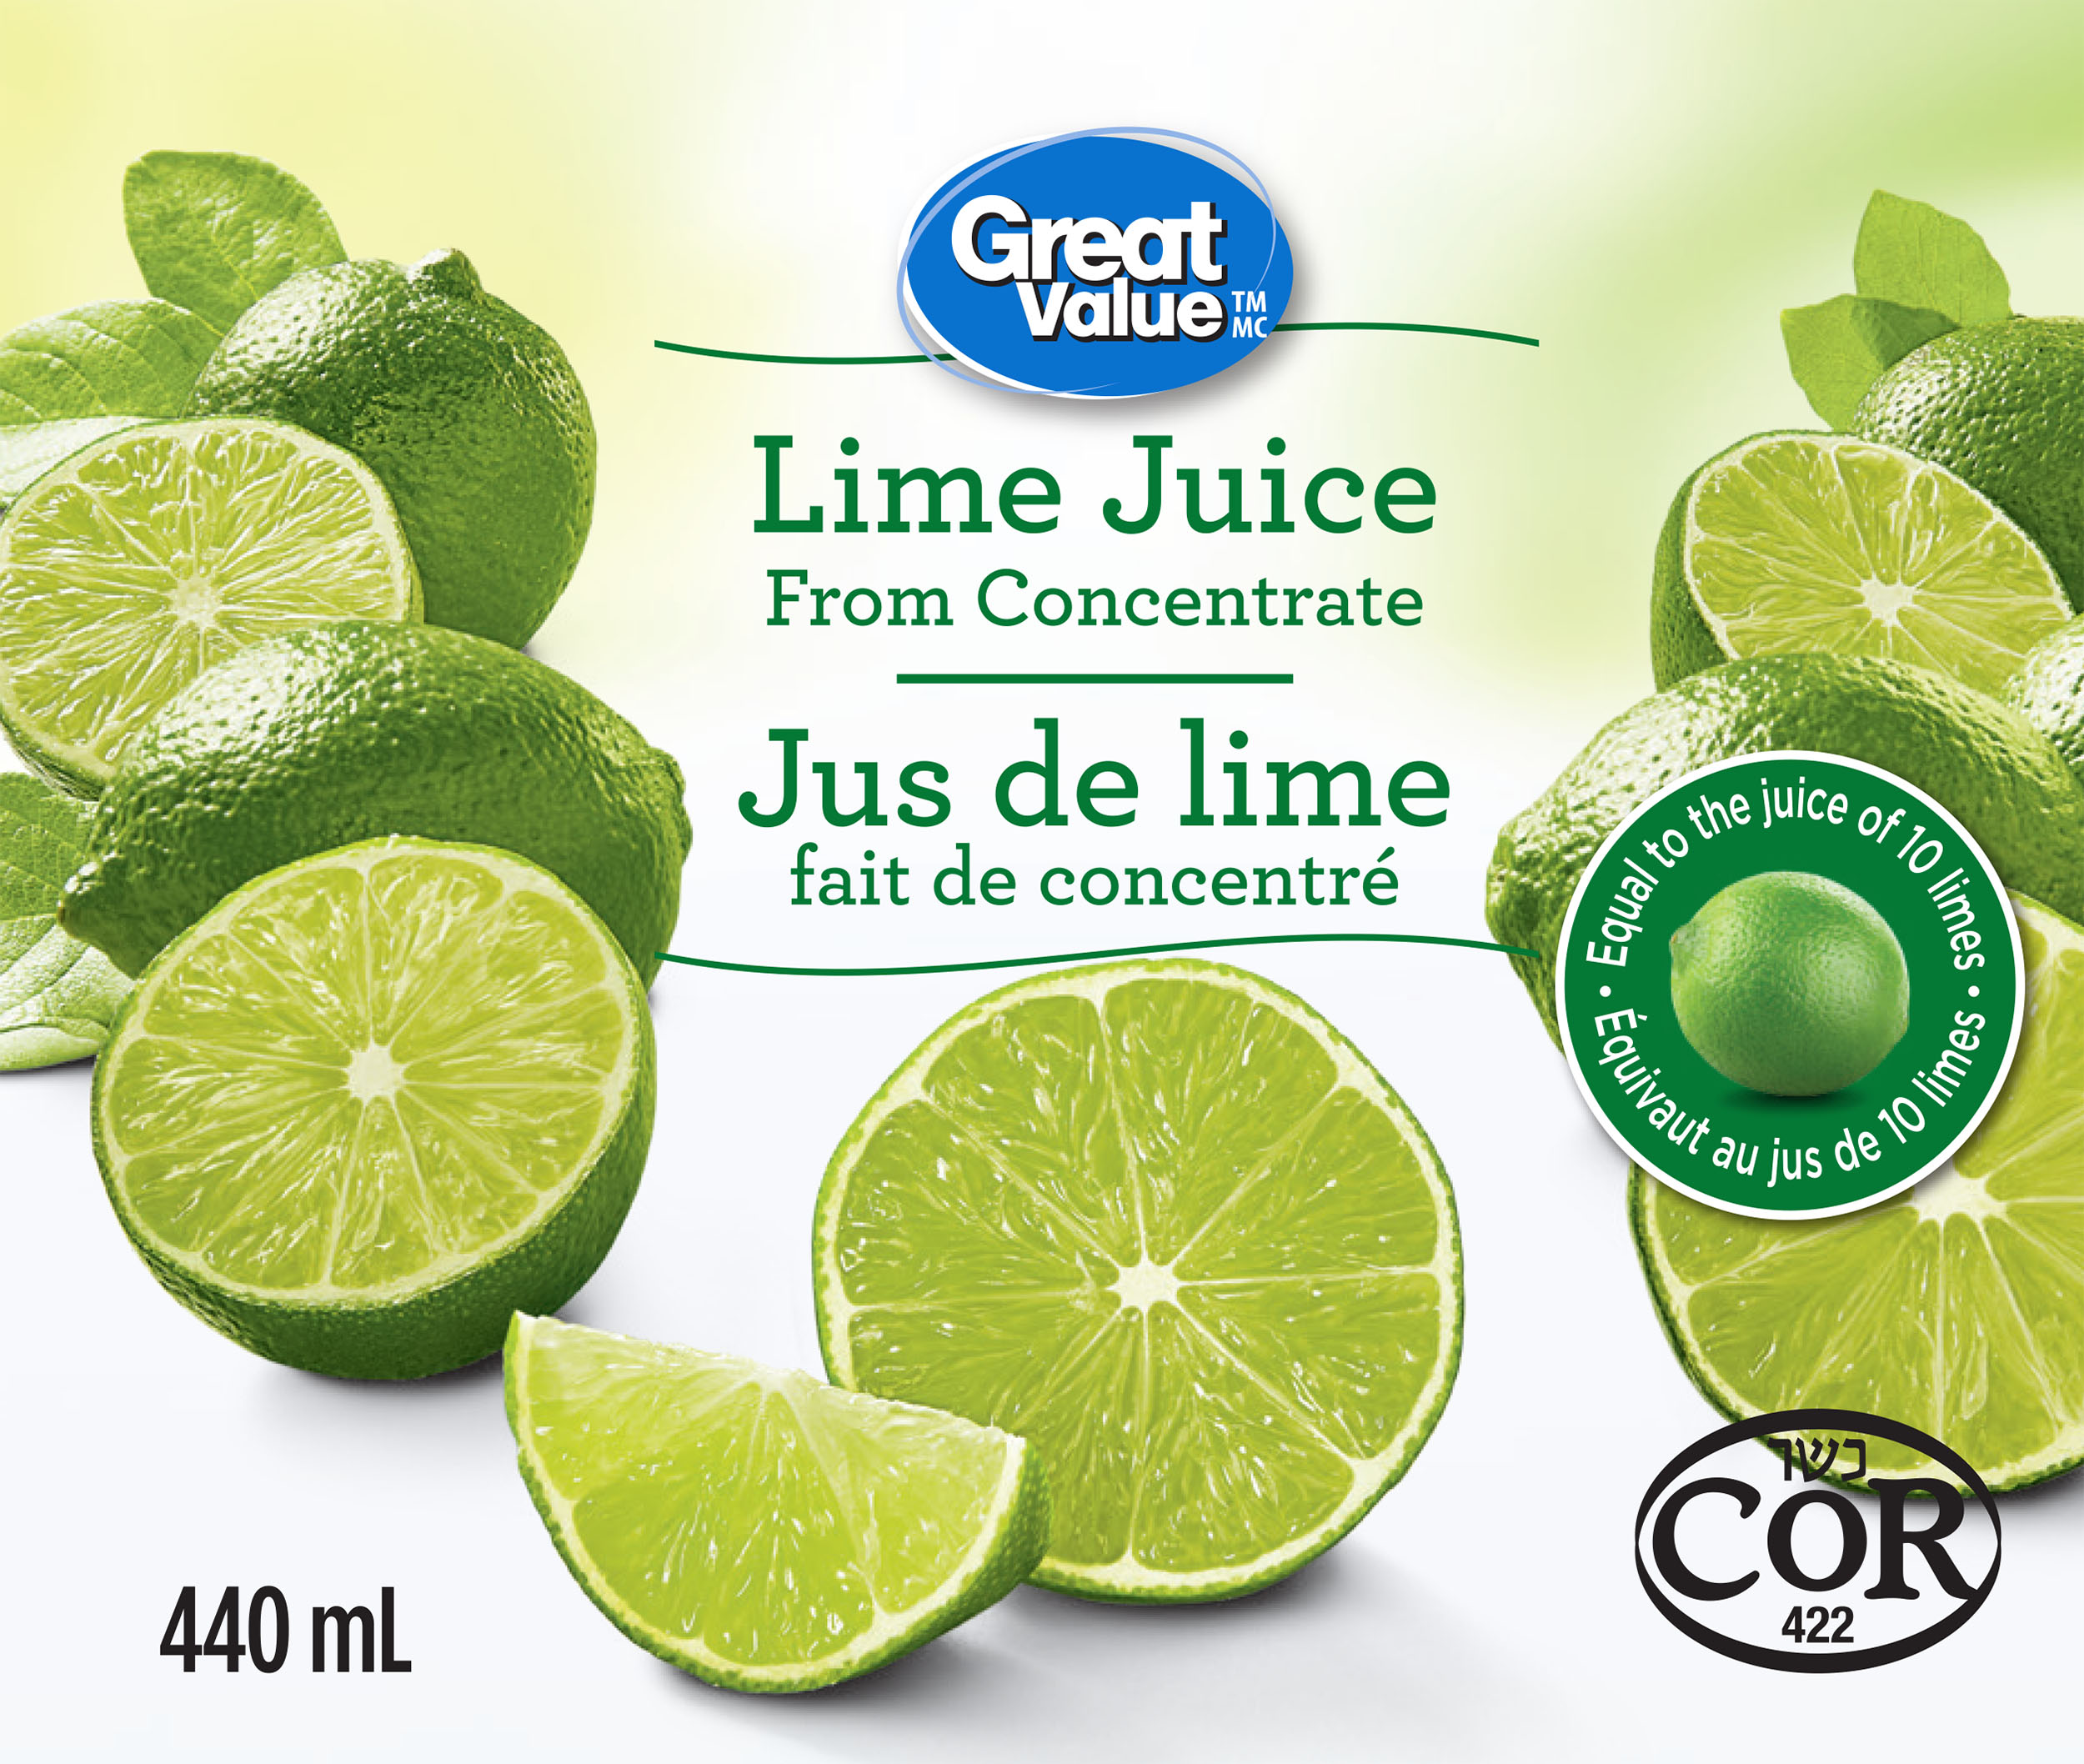 LimeJuice440mL_caDPF_lbl_Final_LR-2